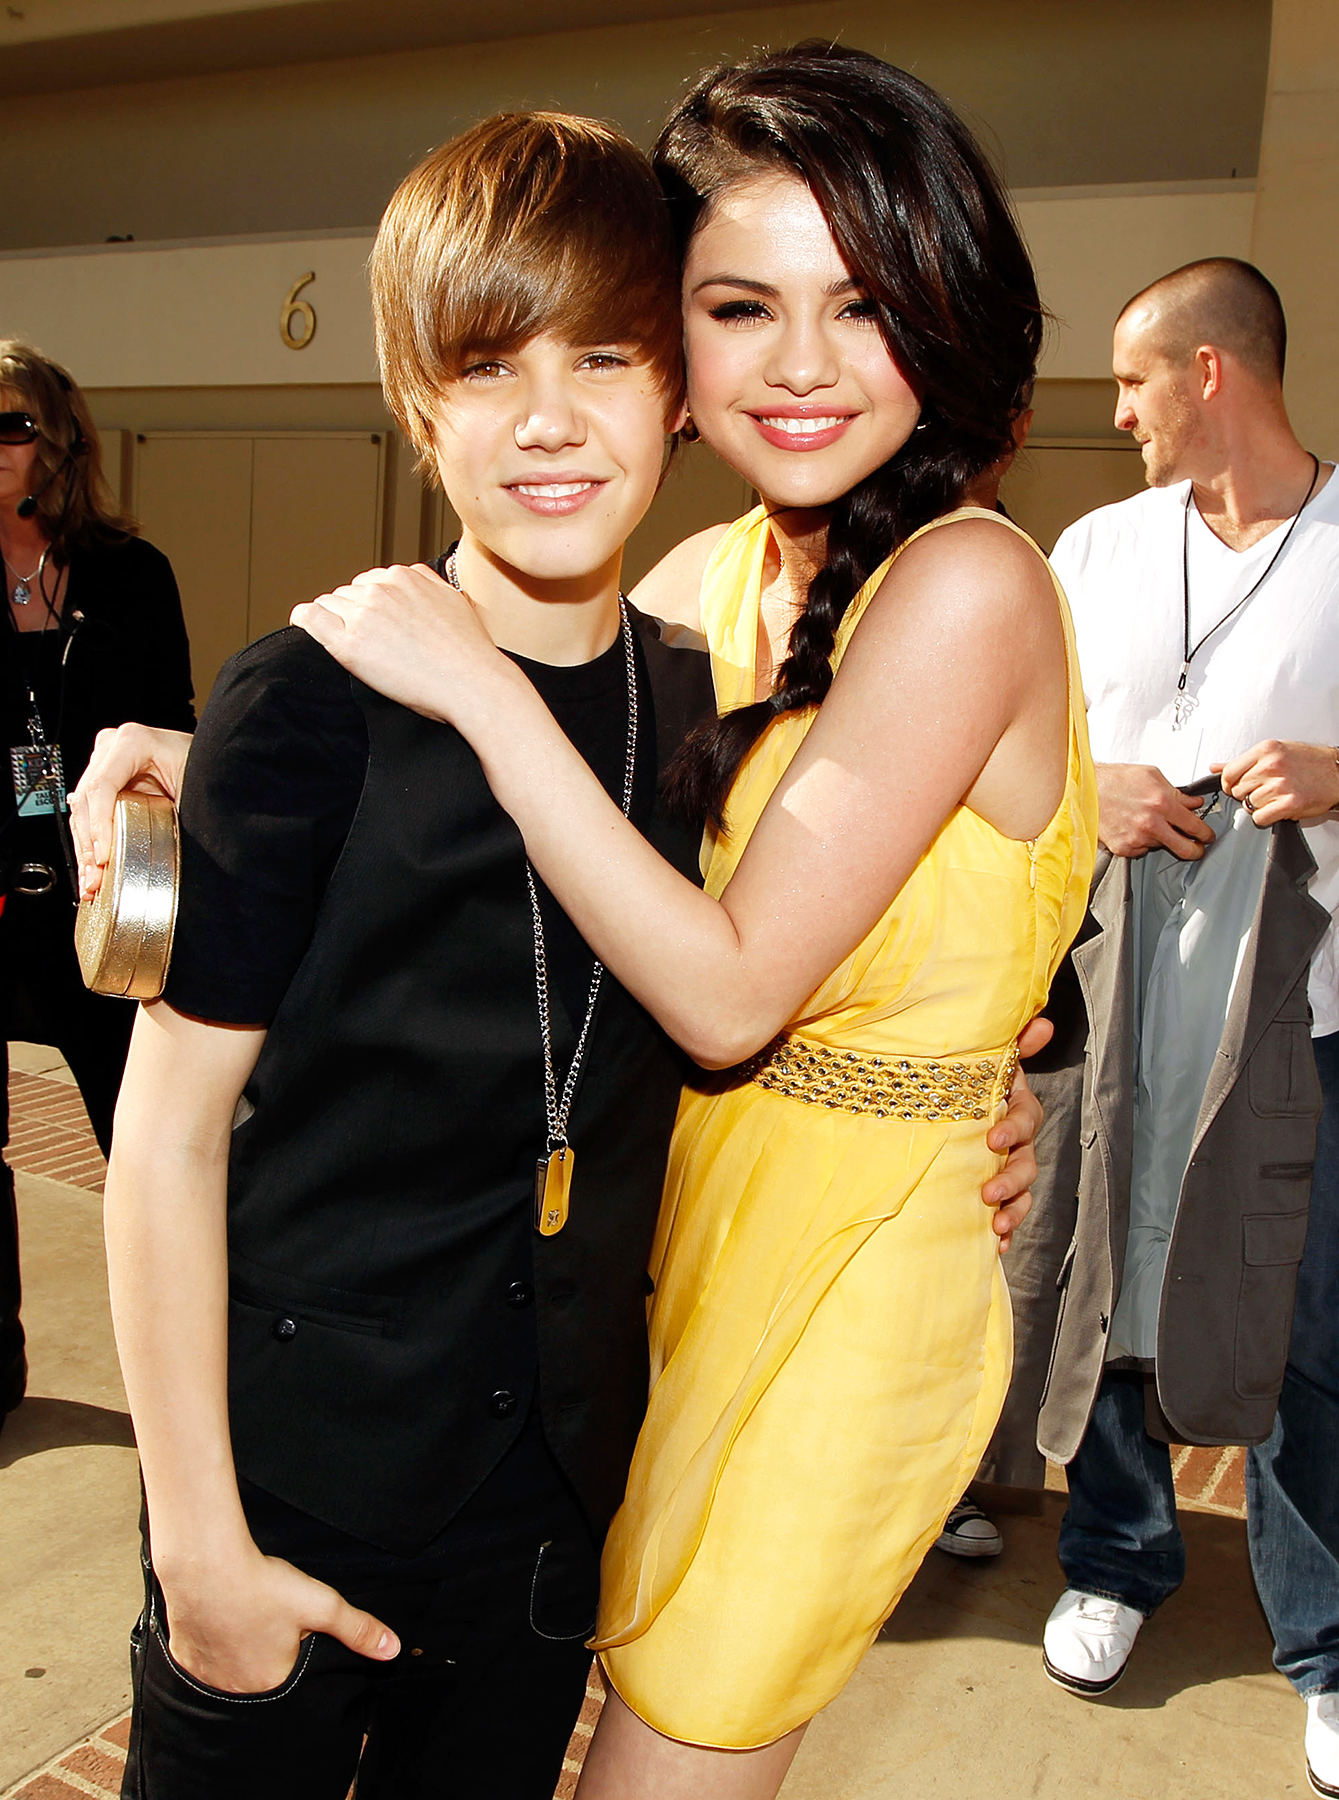 Who Is Justin Bieber Dating Now In 2018